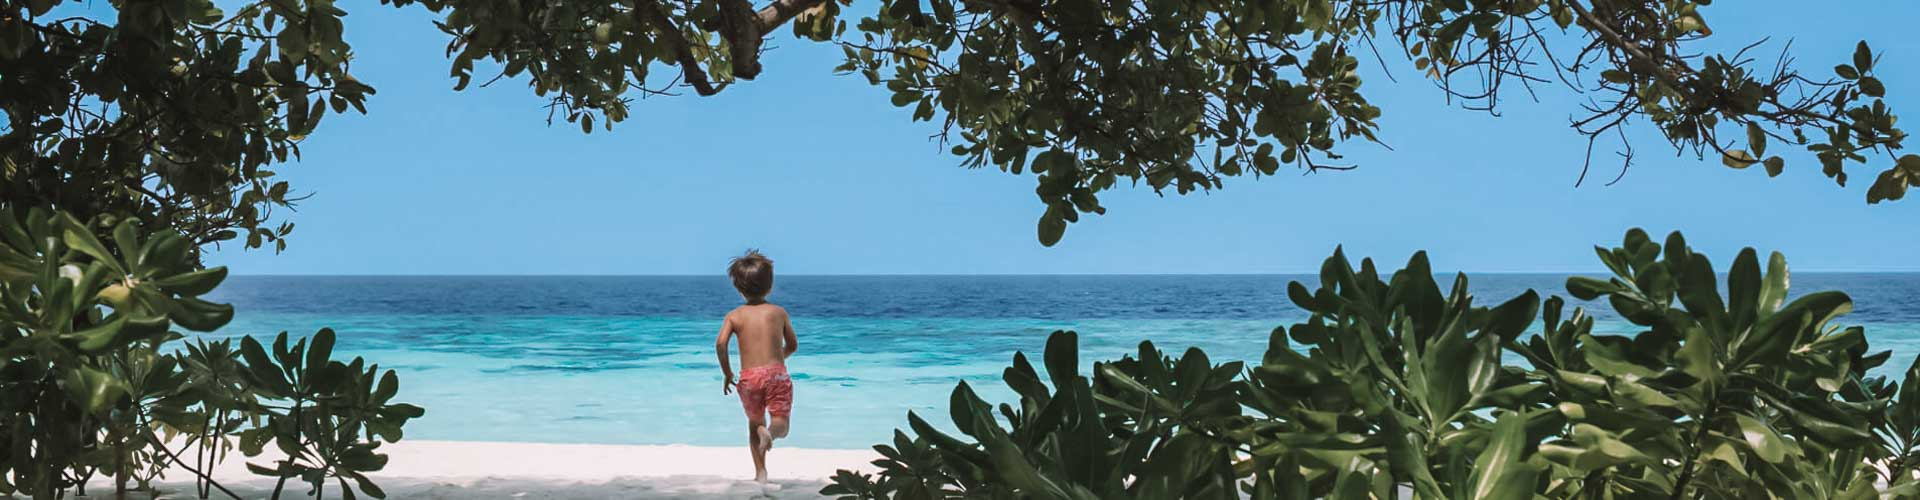 Family Holidays in the Maldives